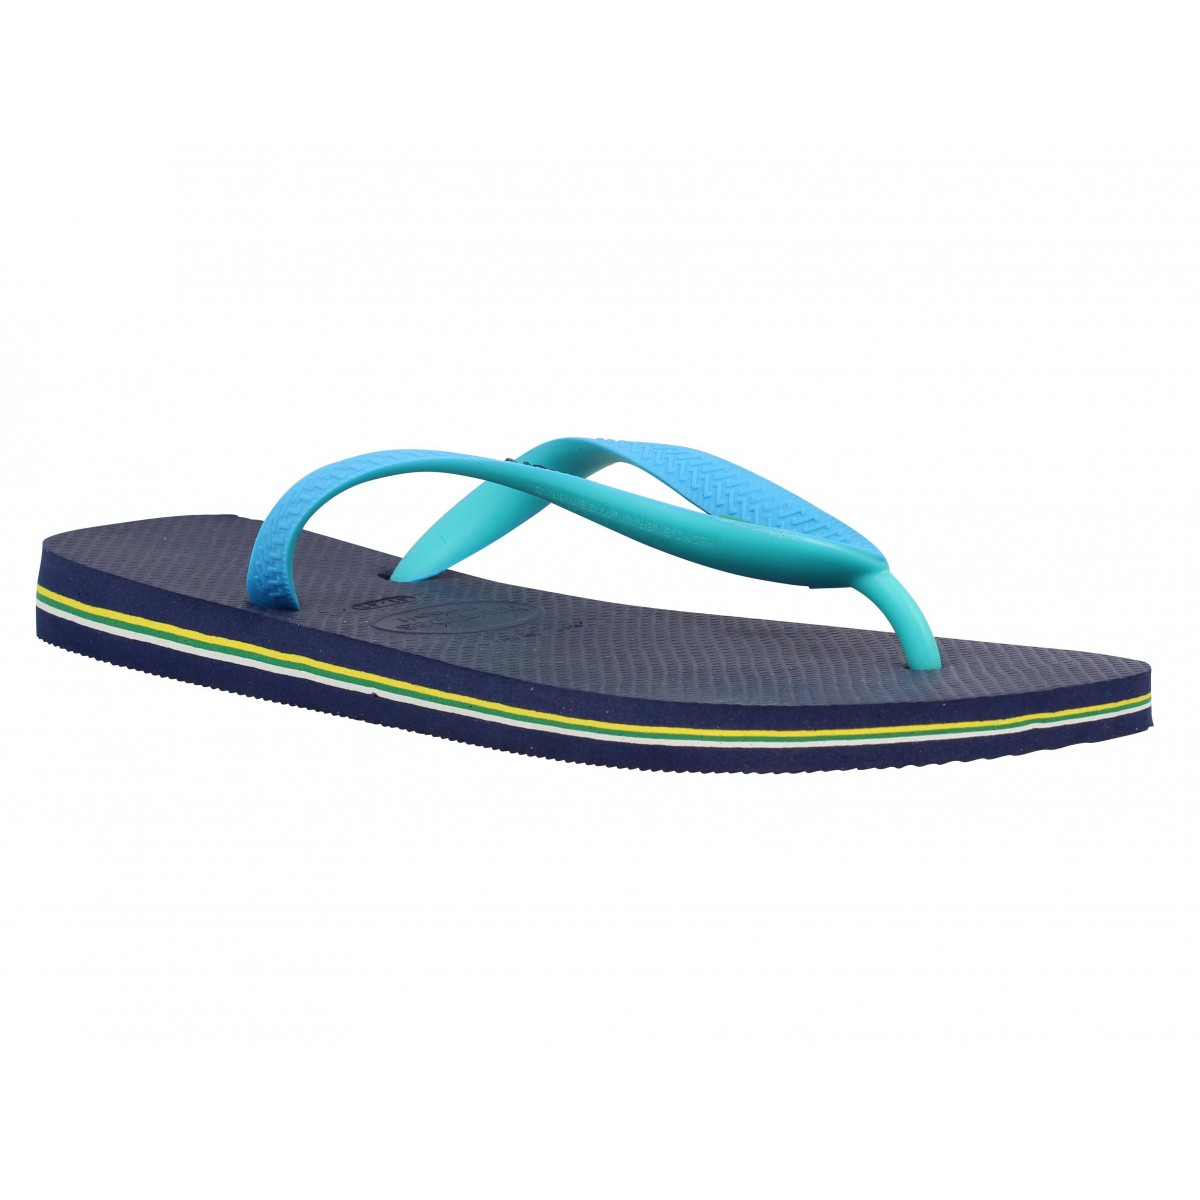 Tongs HAVAIANAS Brasil Mix caoutchouc Homme Navy + Turquoise